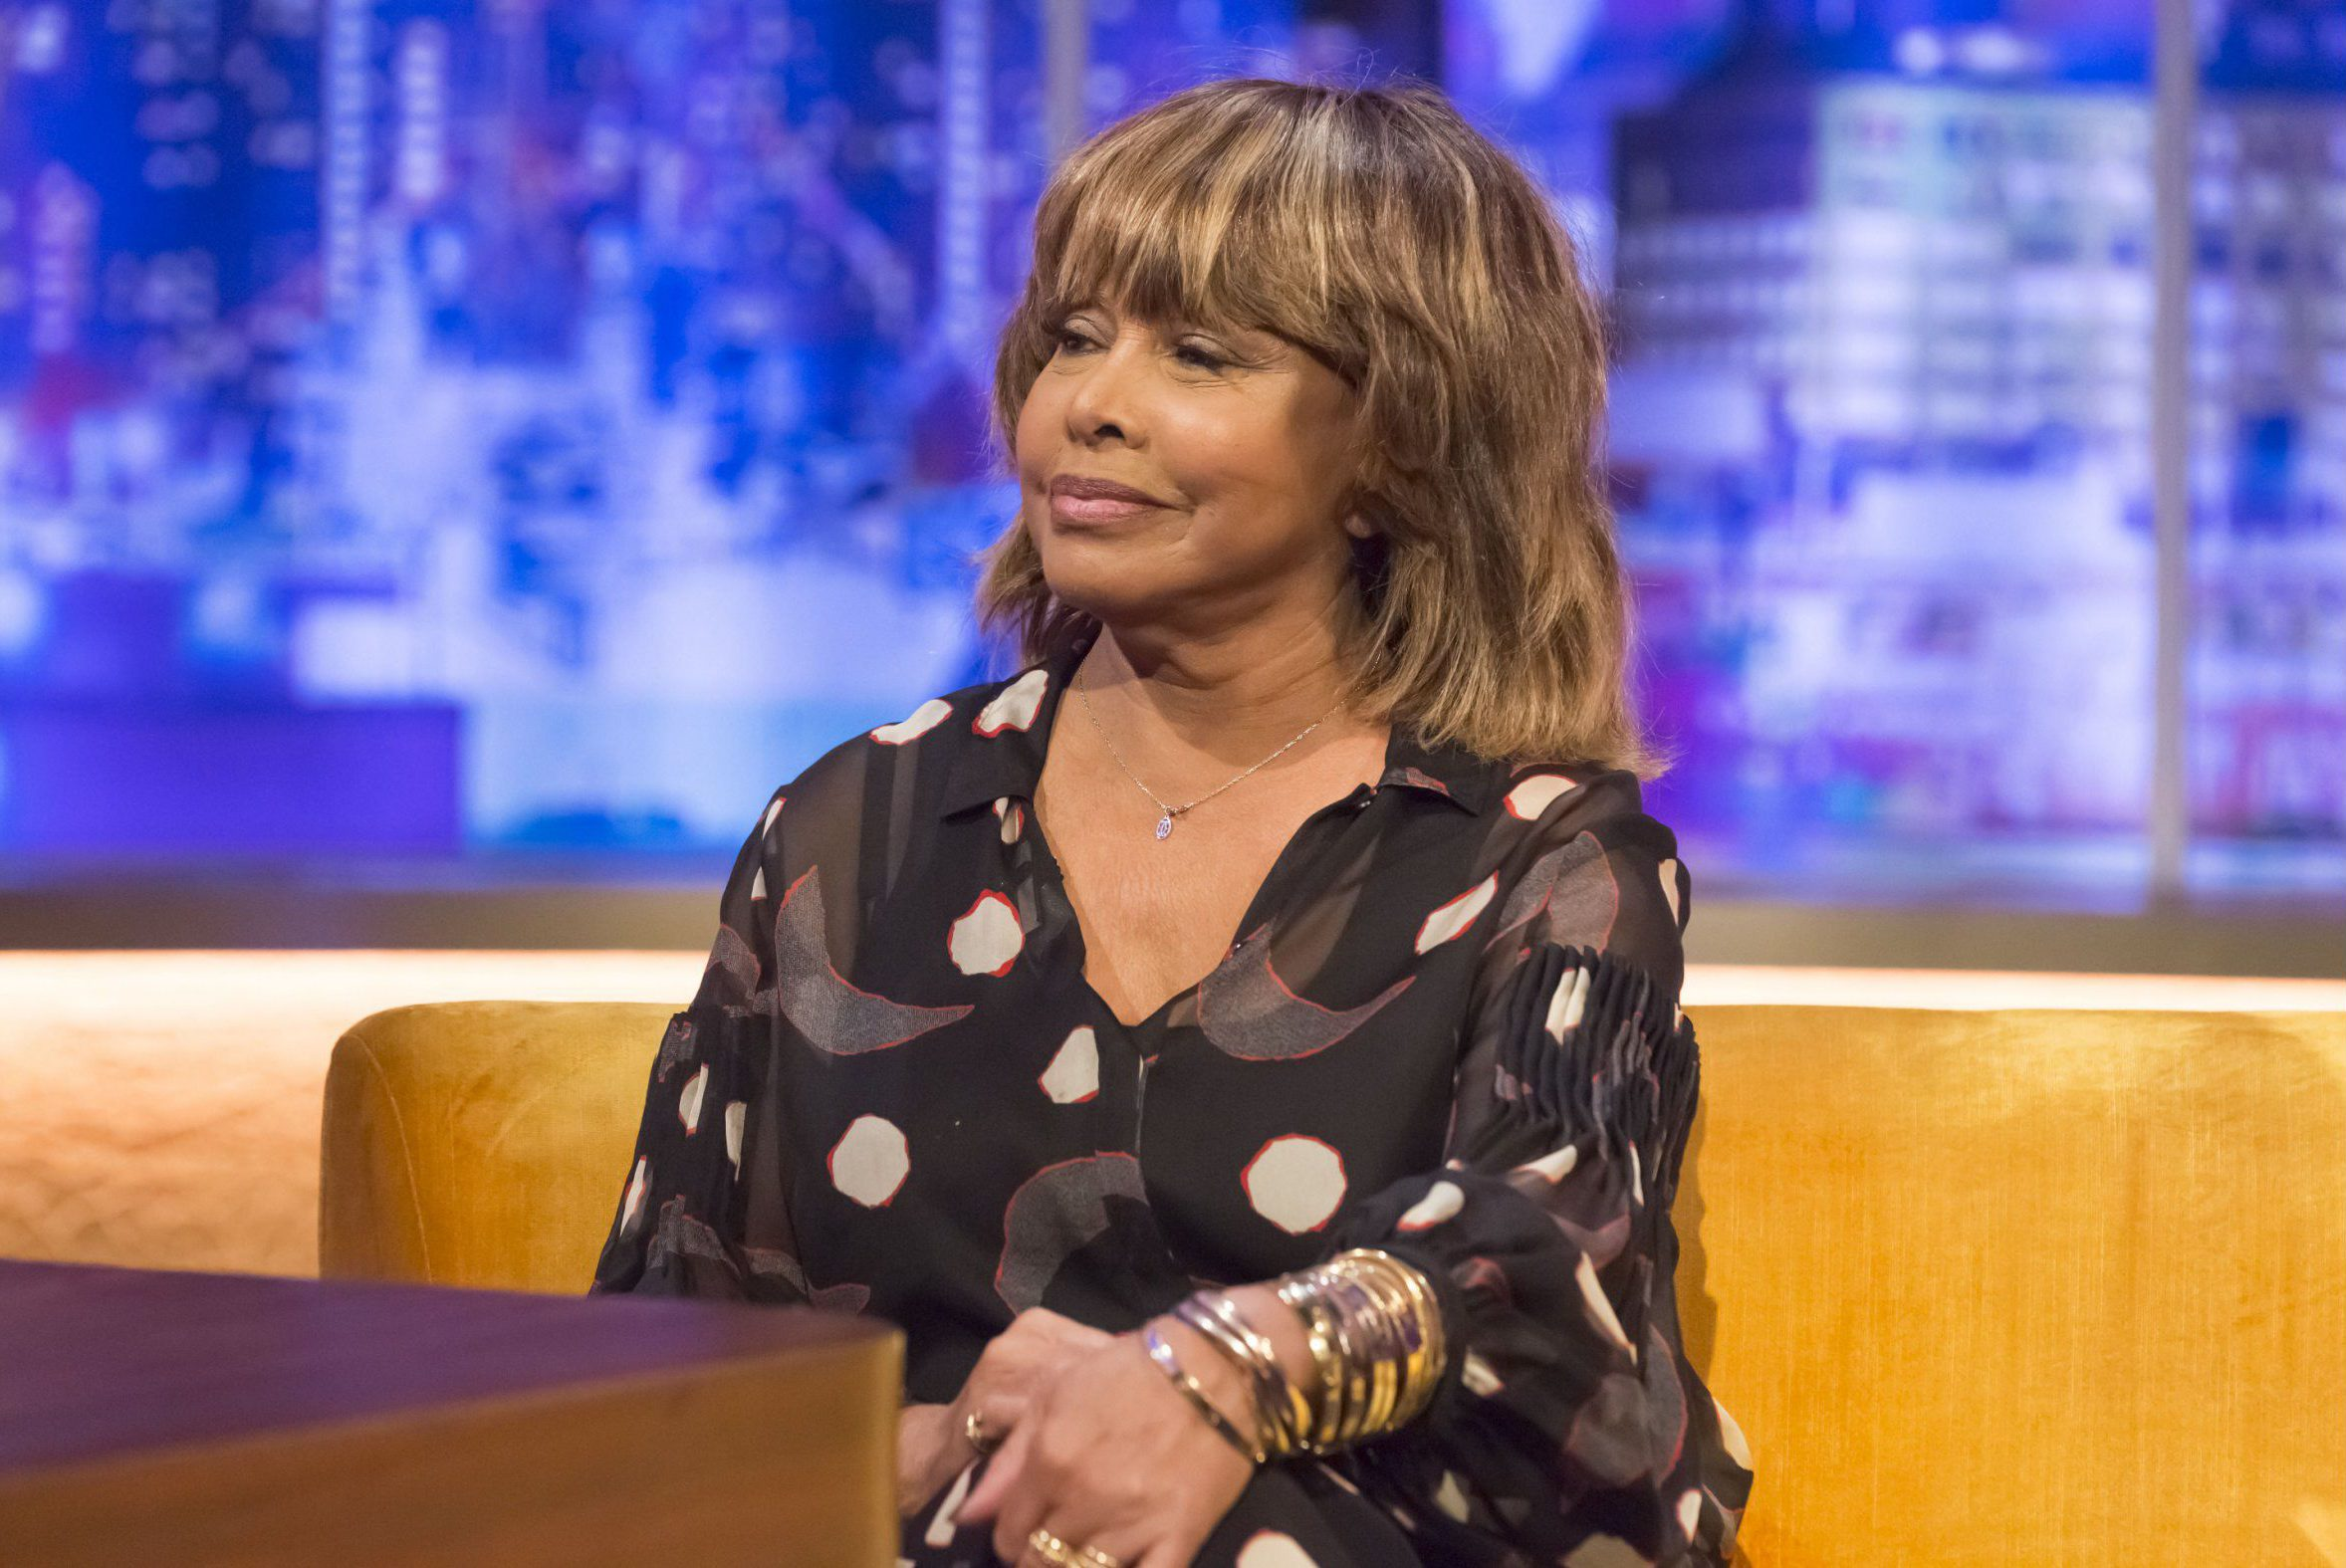 Tina Turner opens up about how she risked her to life to escape her abusive ex-husband Ike